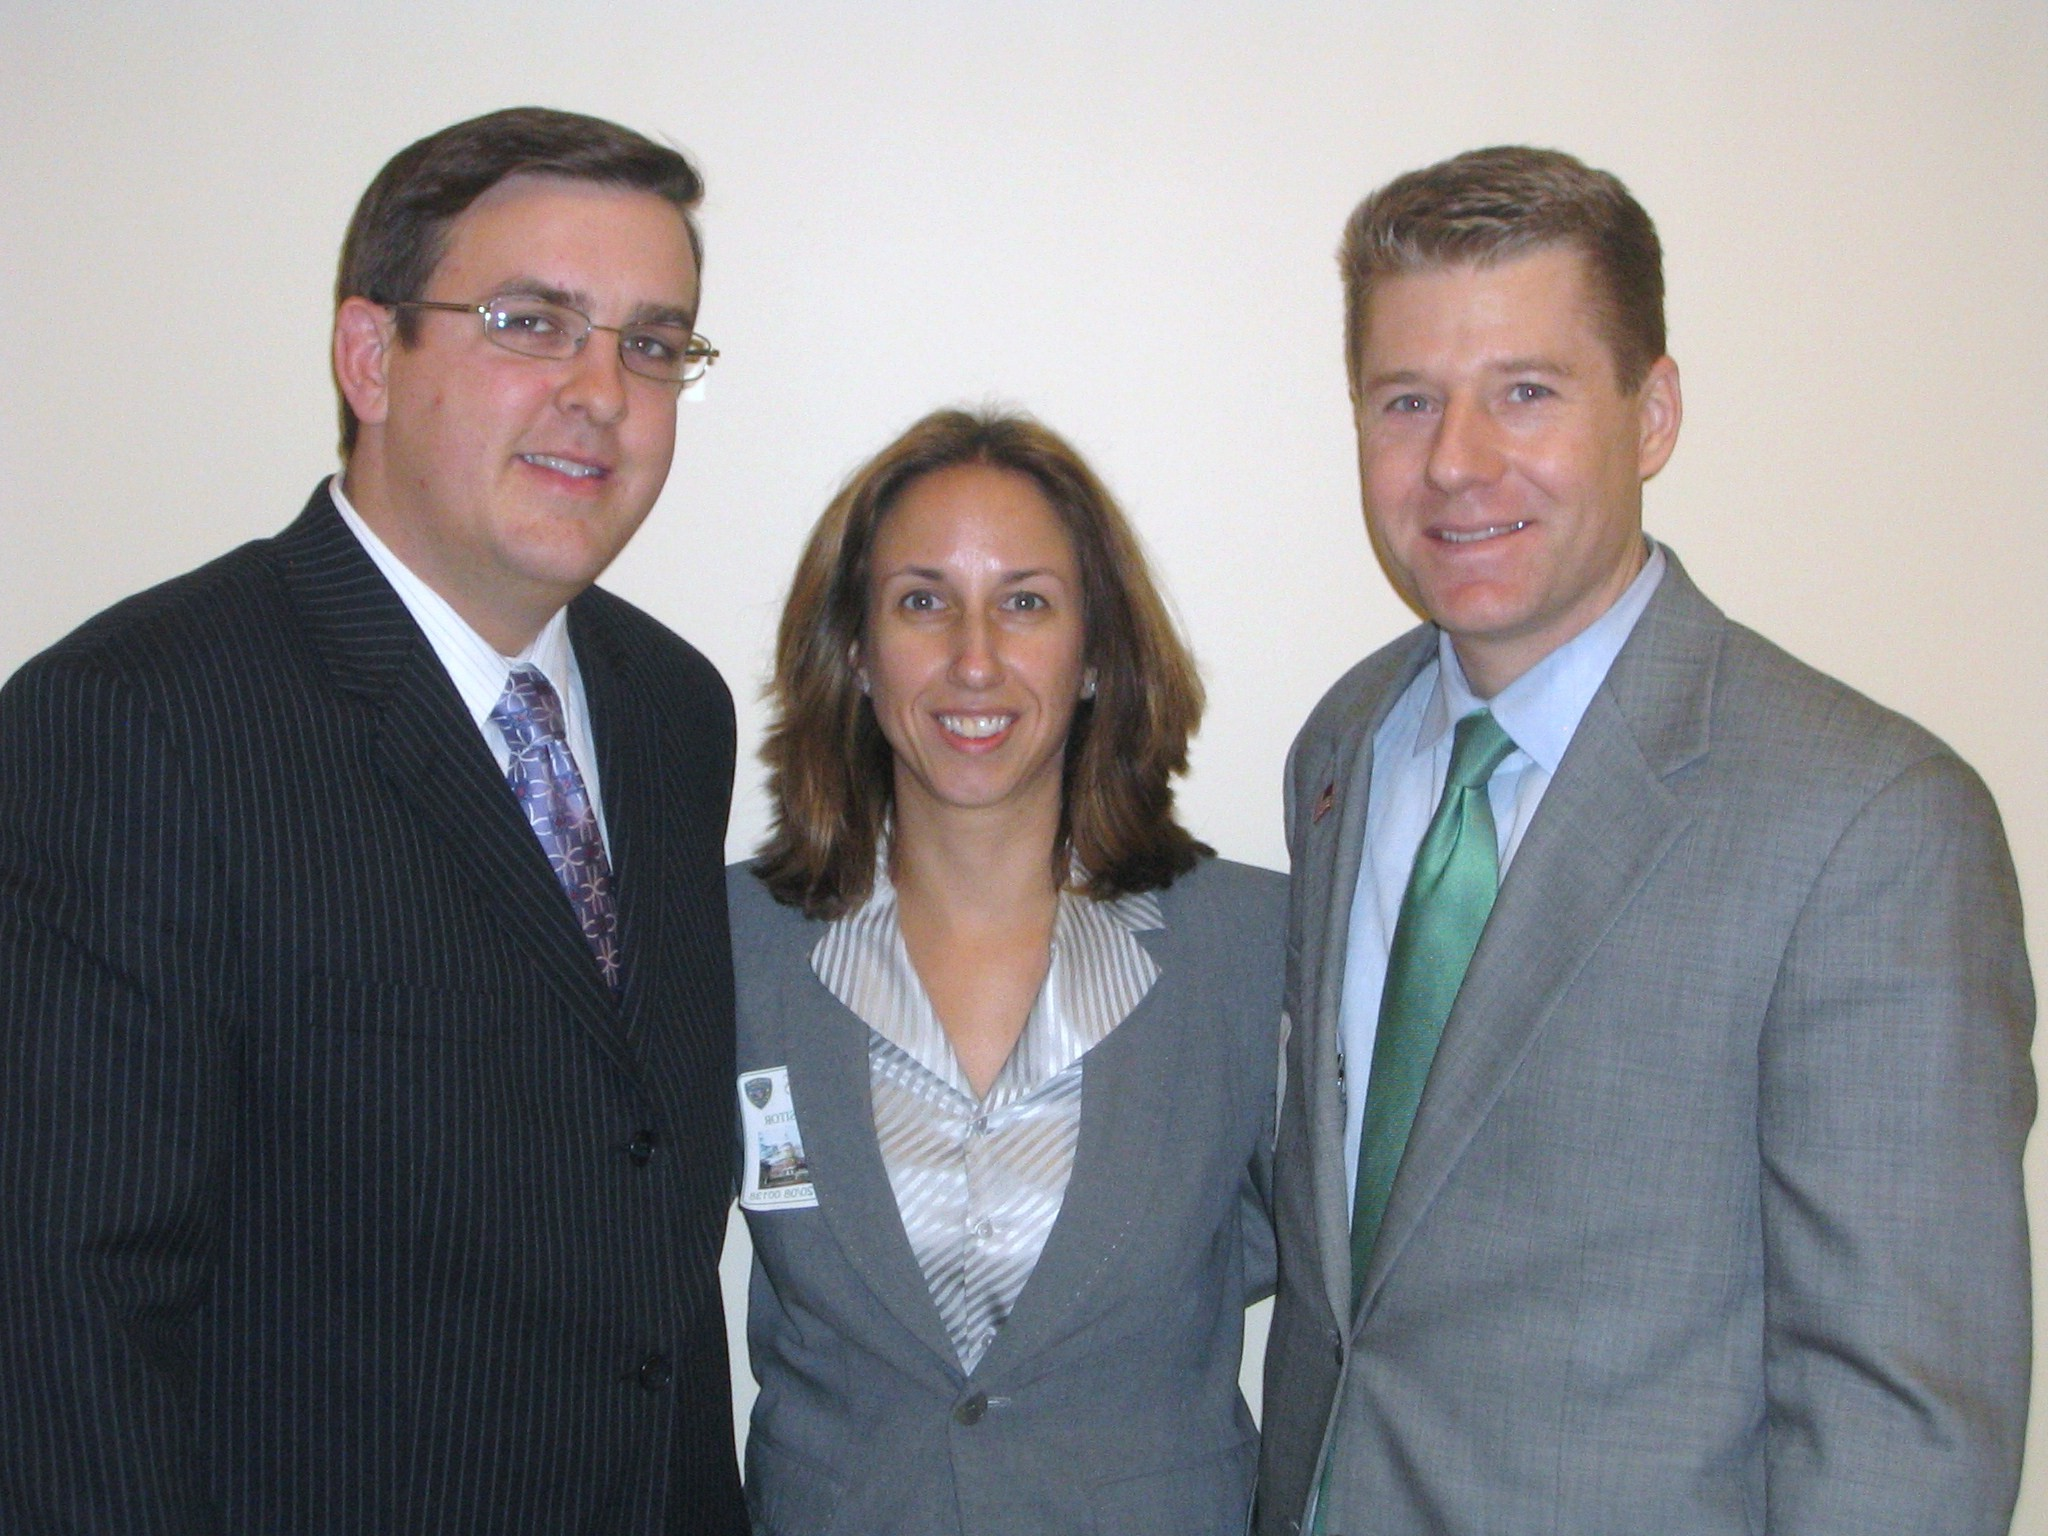 Maryland Delegate Justin Ross, Andrea and Eric on Feb. 20, 2008